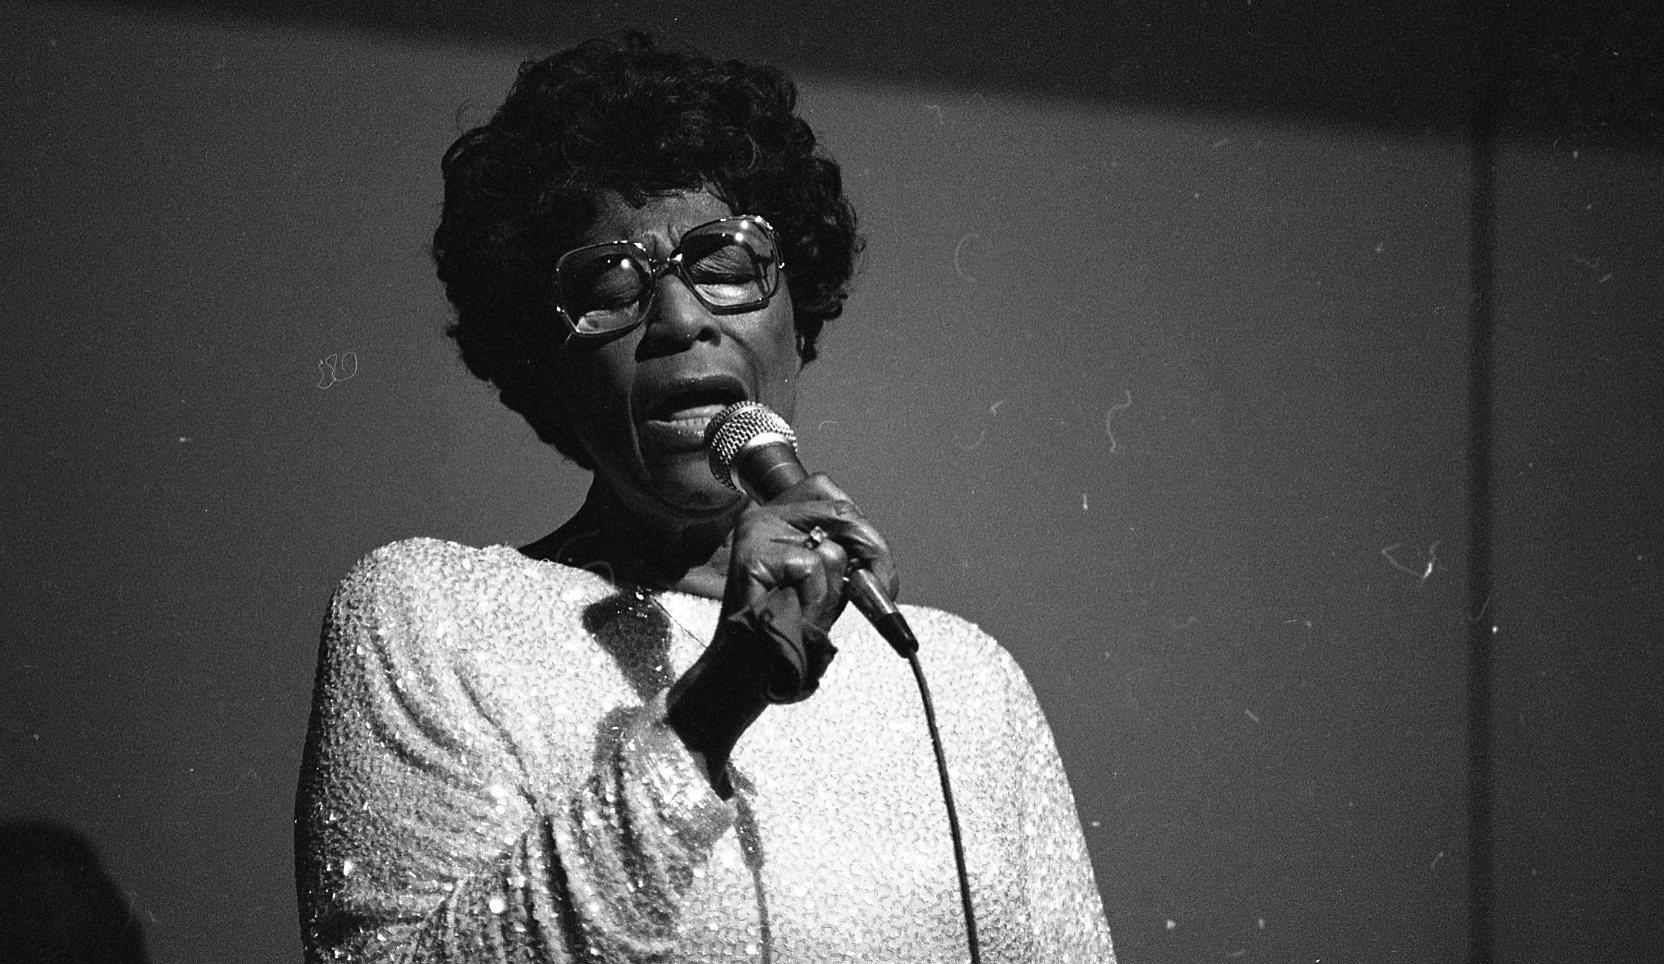 Caption: Ella Fitzgerald performs at Interlochen in July 1984, Credit: Interlochen Center for the Arts